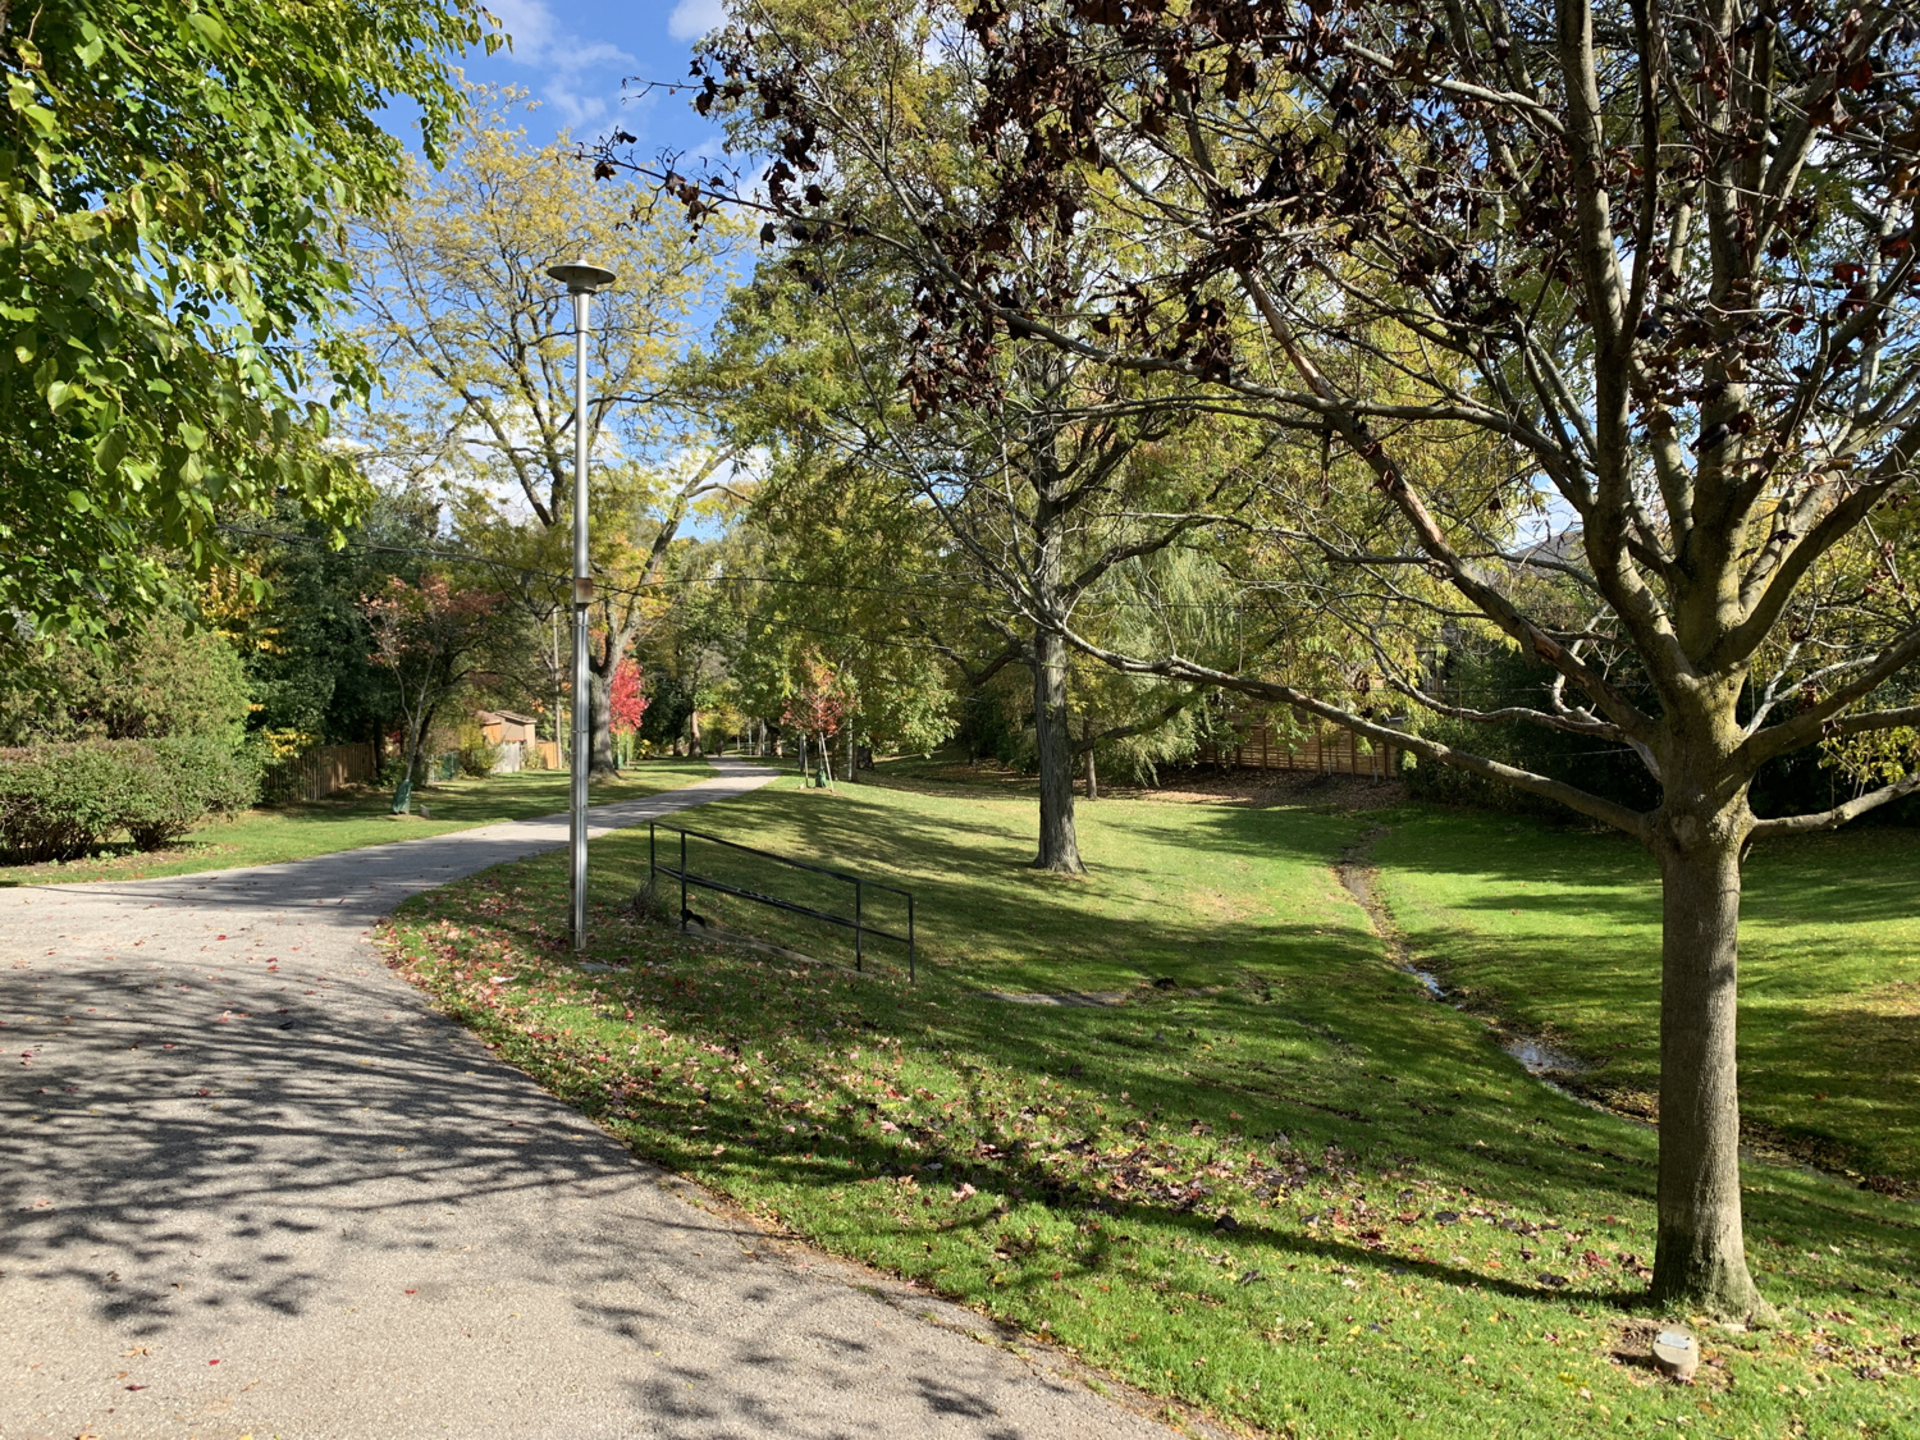 Duncairn Park at 93 Duncairn Road, Banbury-Don Mills, Toronto